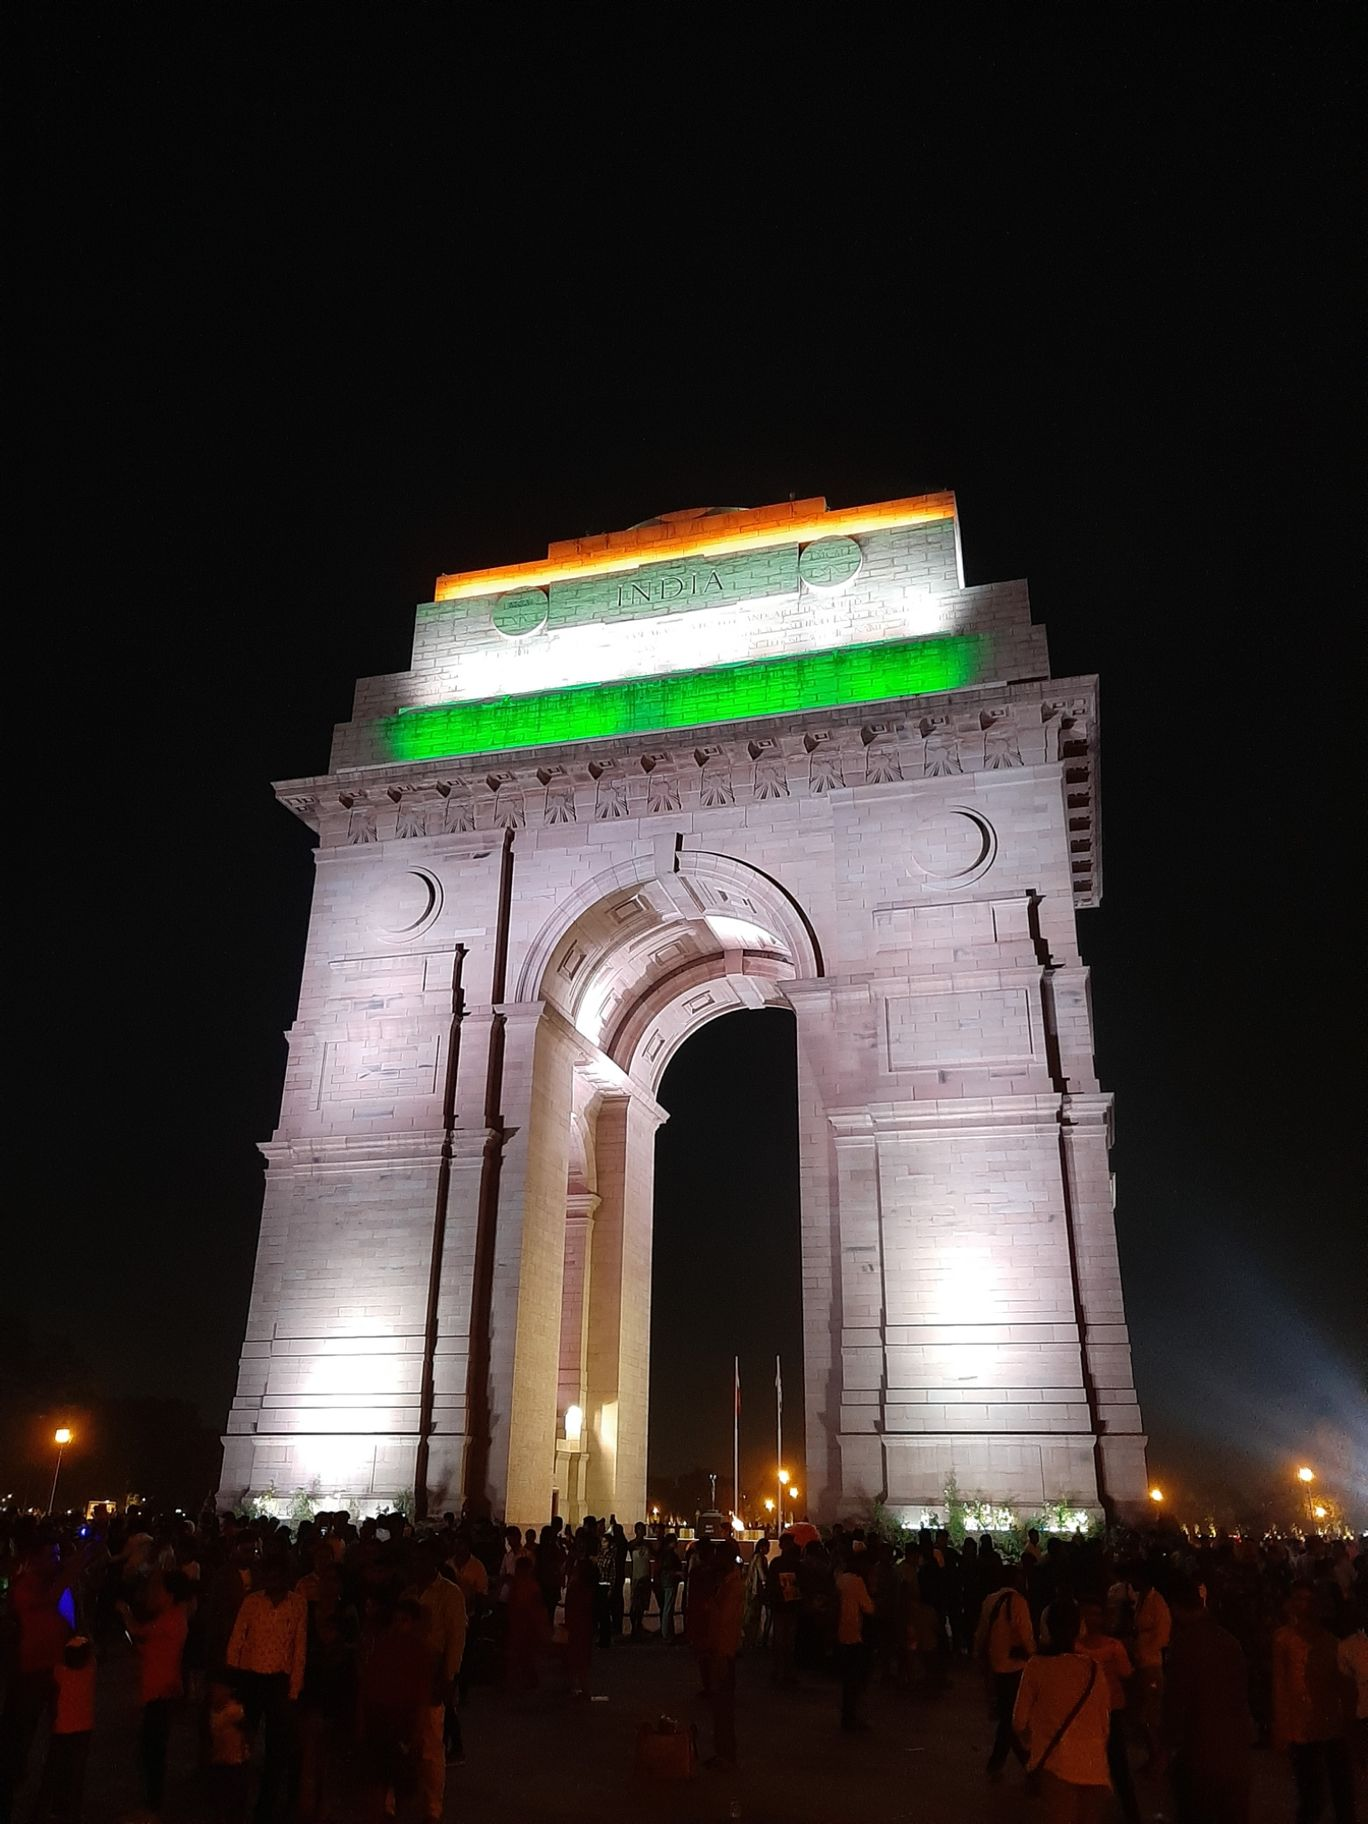 Photo of India Gate By Atif